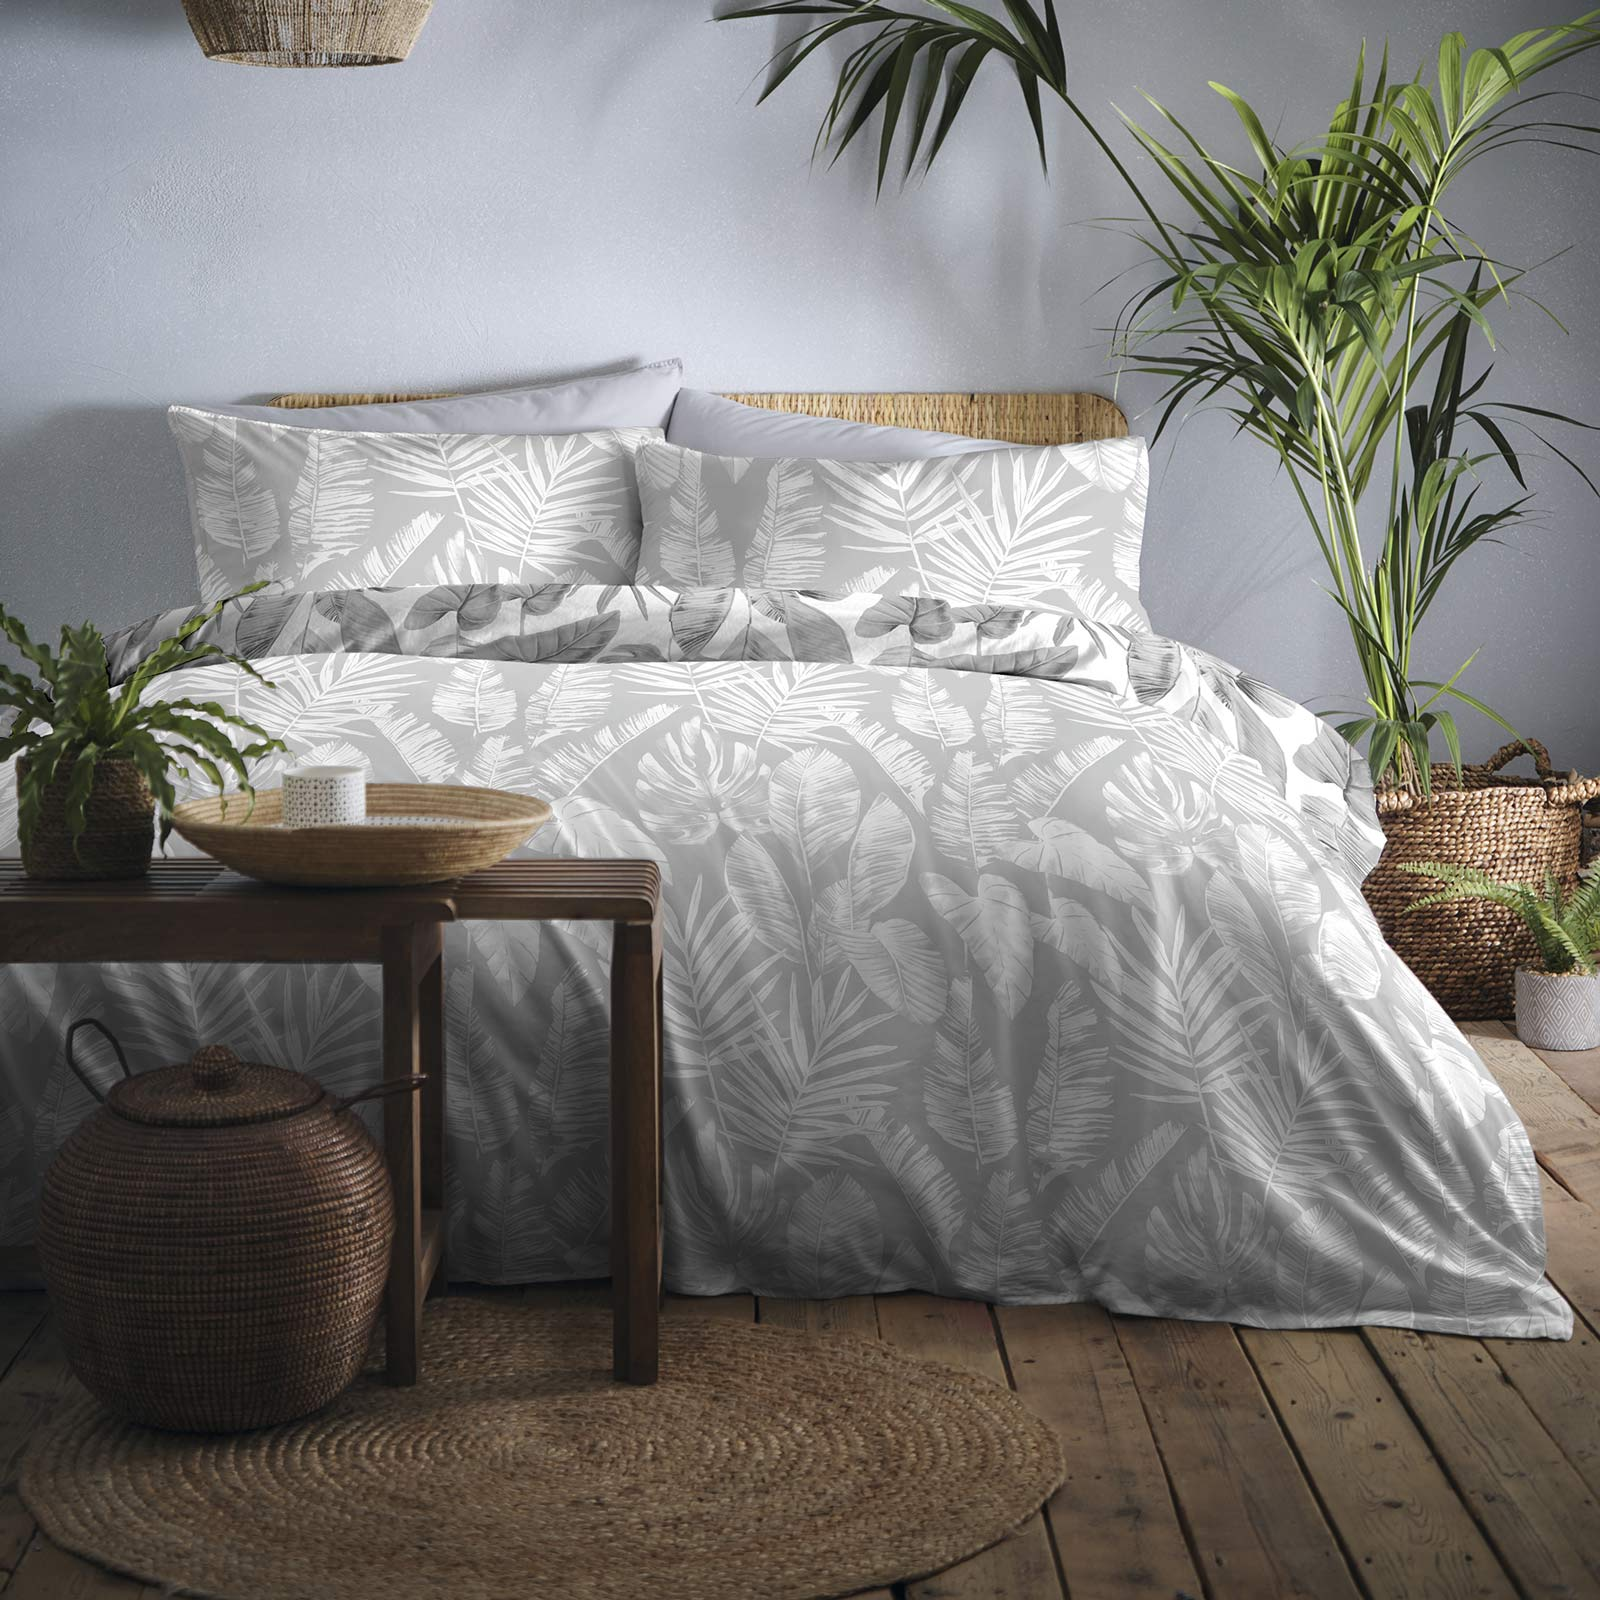 Tahiti Tropical Palm Leaf Print Grey Duvet Cover Set -  - Ideal Textiles